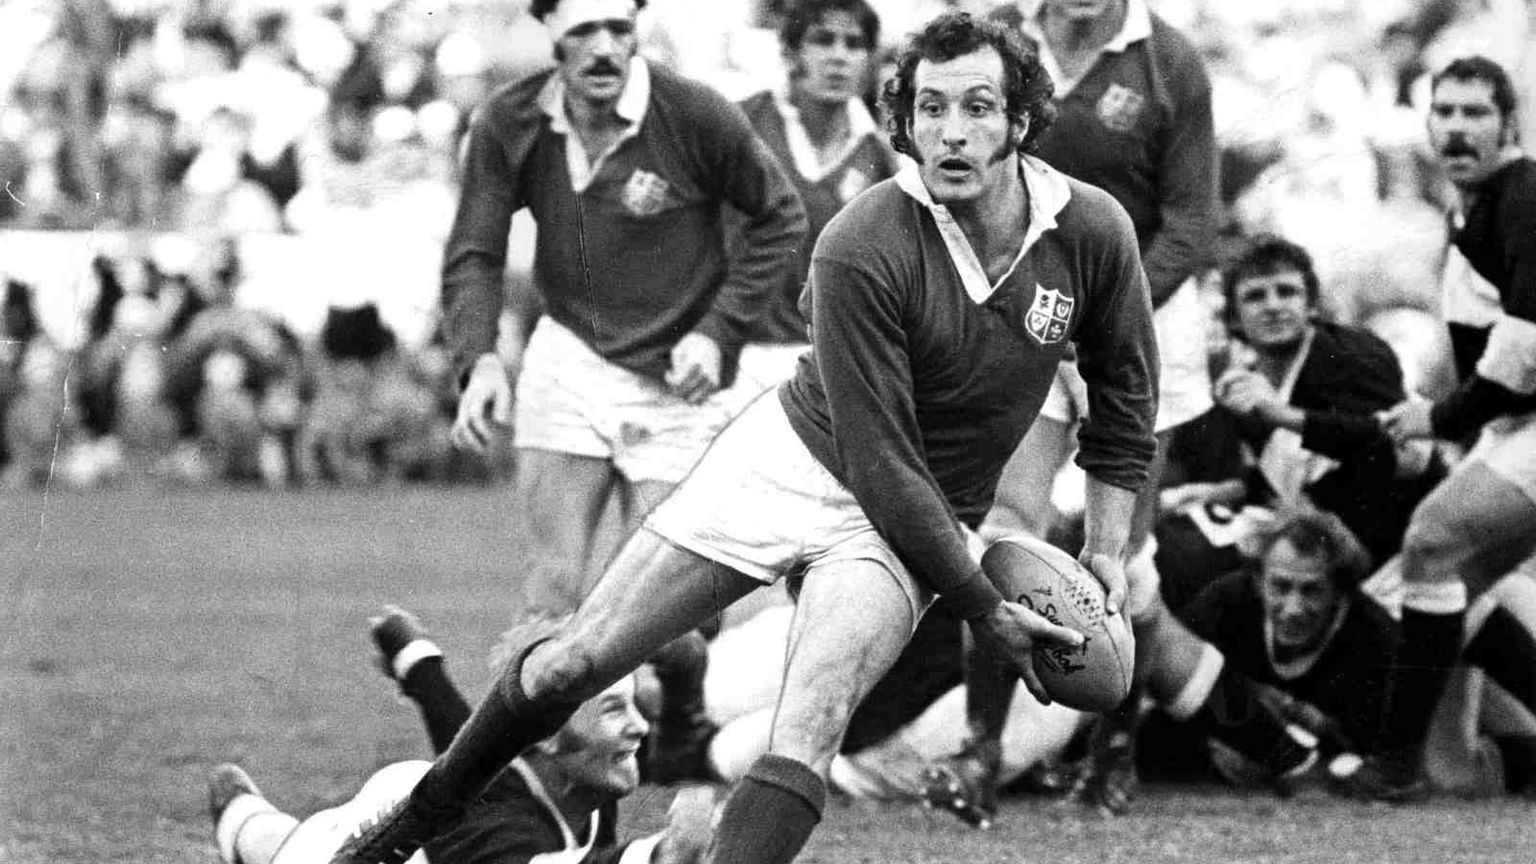 Gareth_Edwards,_the_great_Welsh_scrum-half